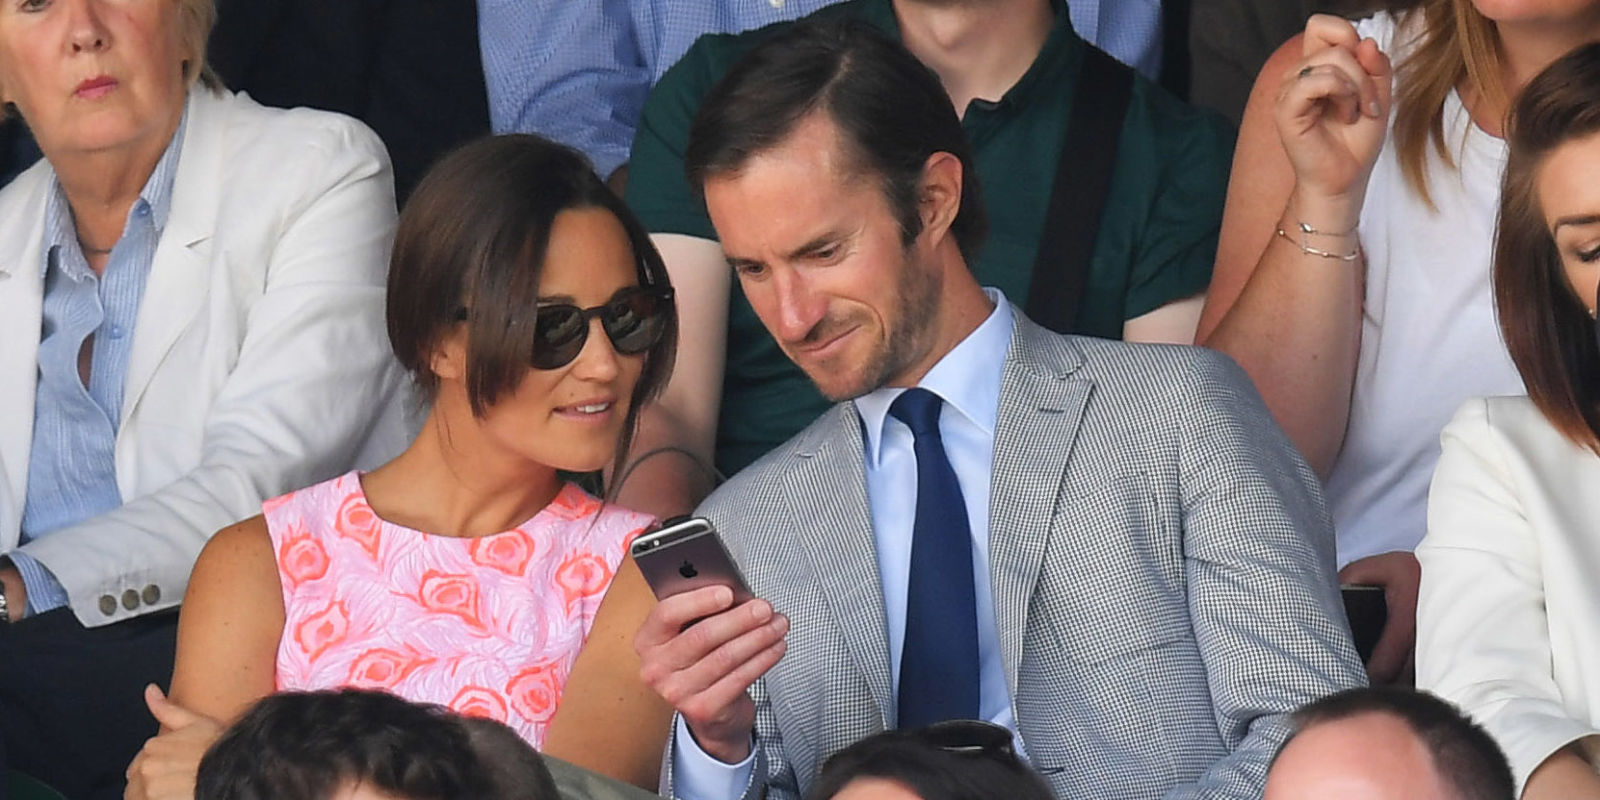 Pippa Middleton Engaged - Who Is James Matthews, Her Fiance? - photo#22